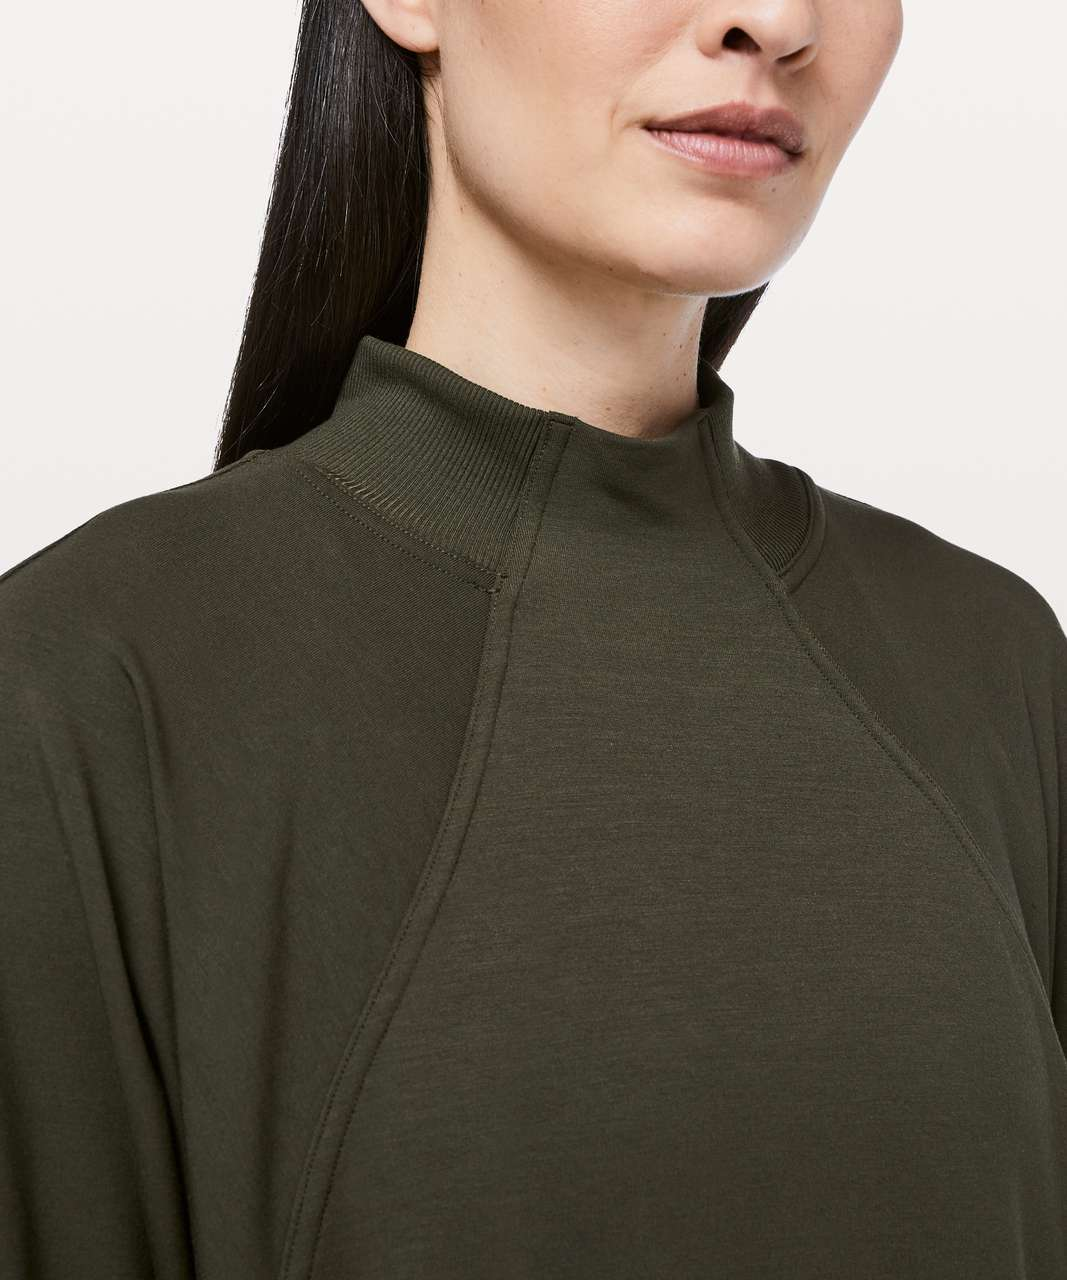 Lululemon Cozy Instincts Dress - Dark Olive